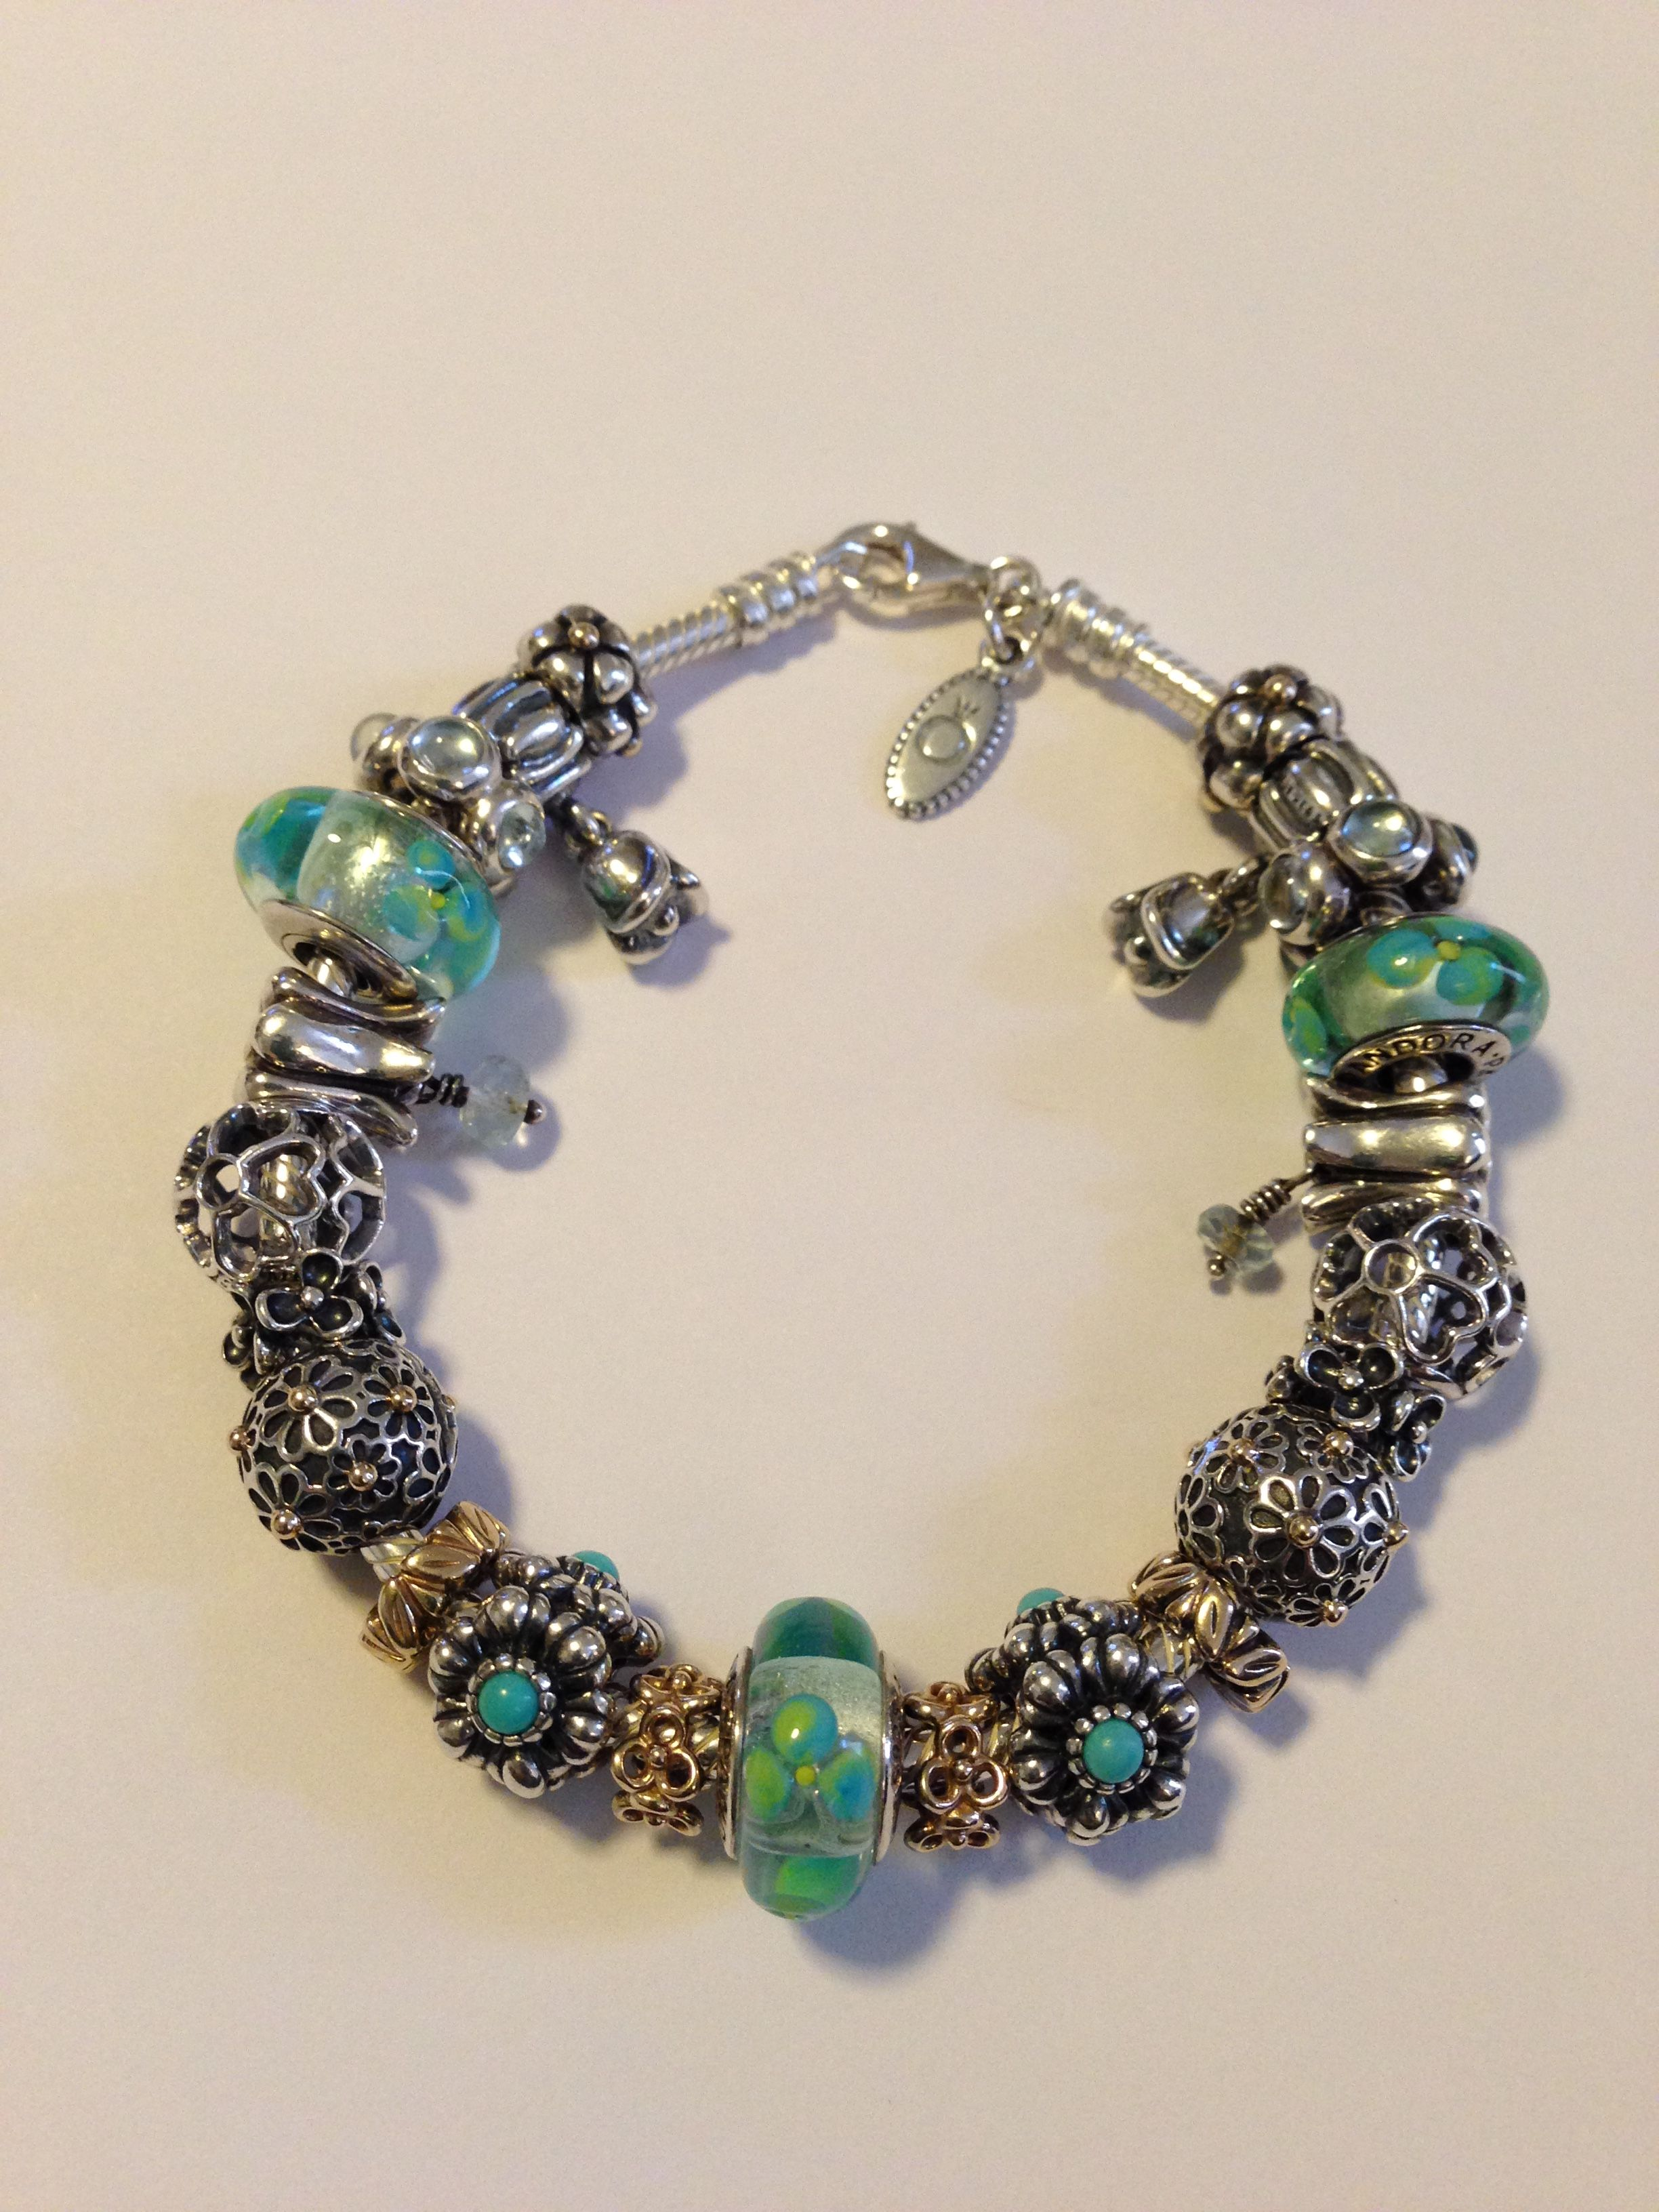 My Clear Teal Flowers Murano Glass Charms And Flower Pandora Bracelet By  Nicole